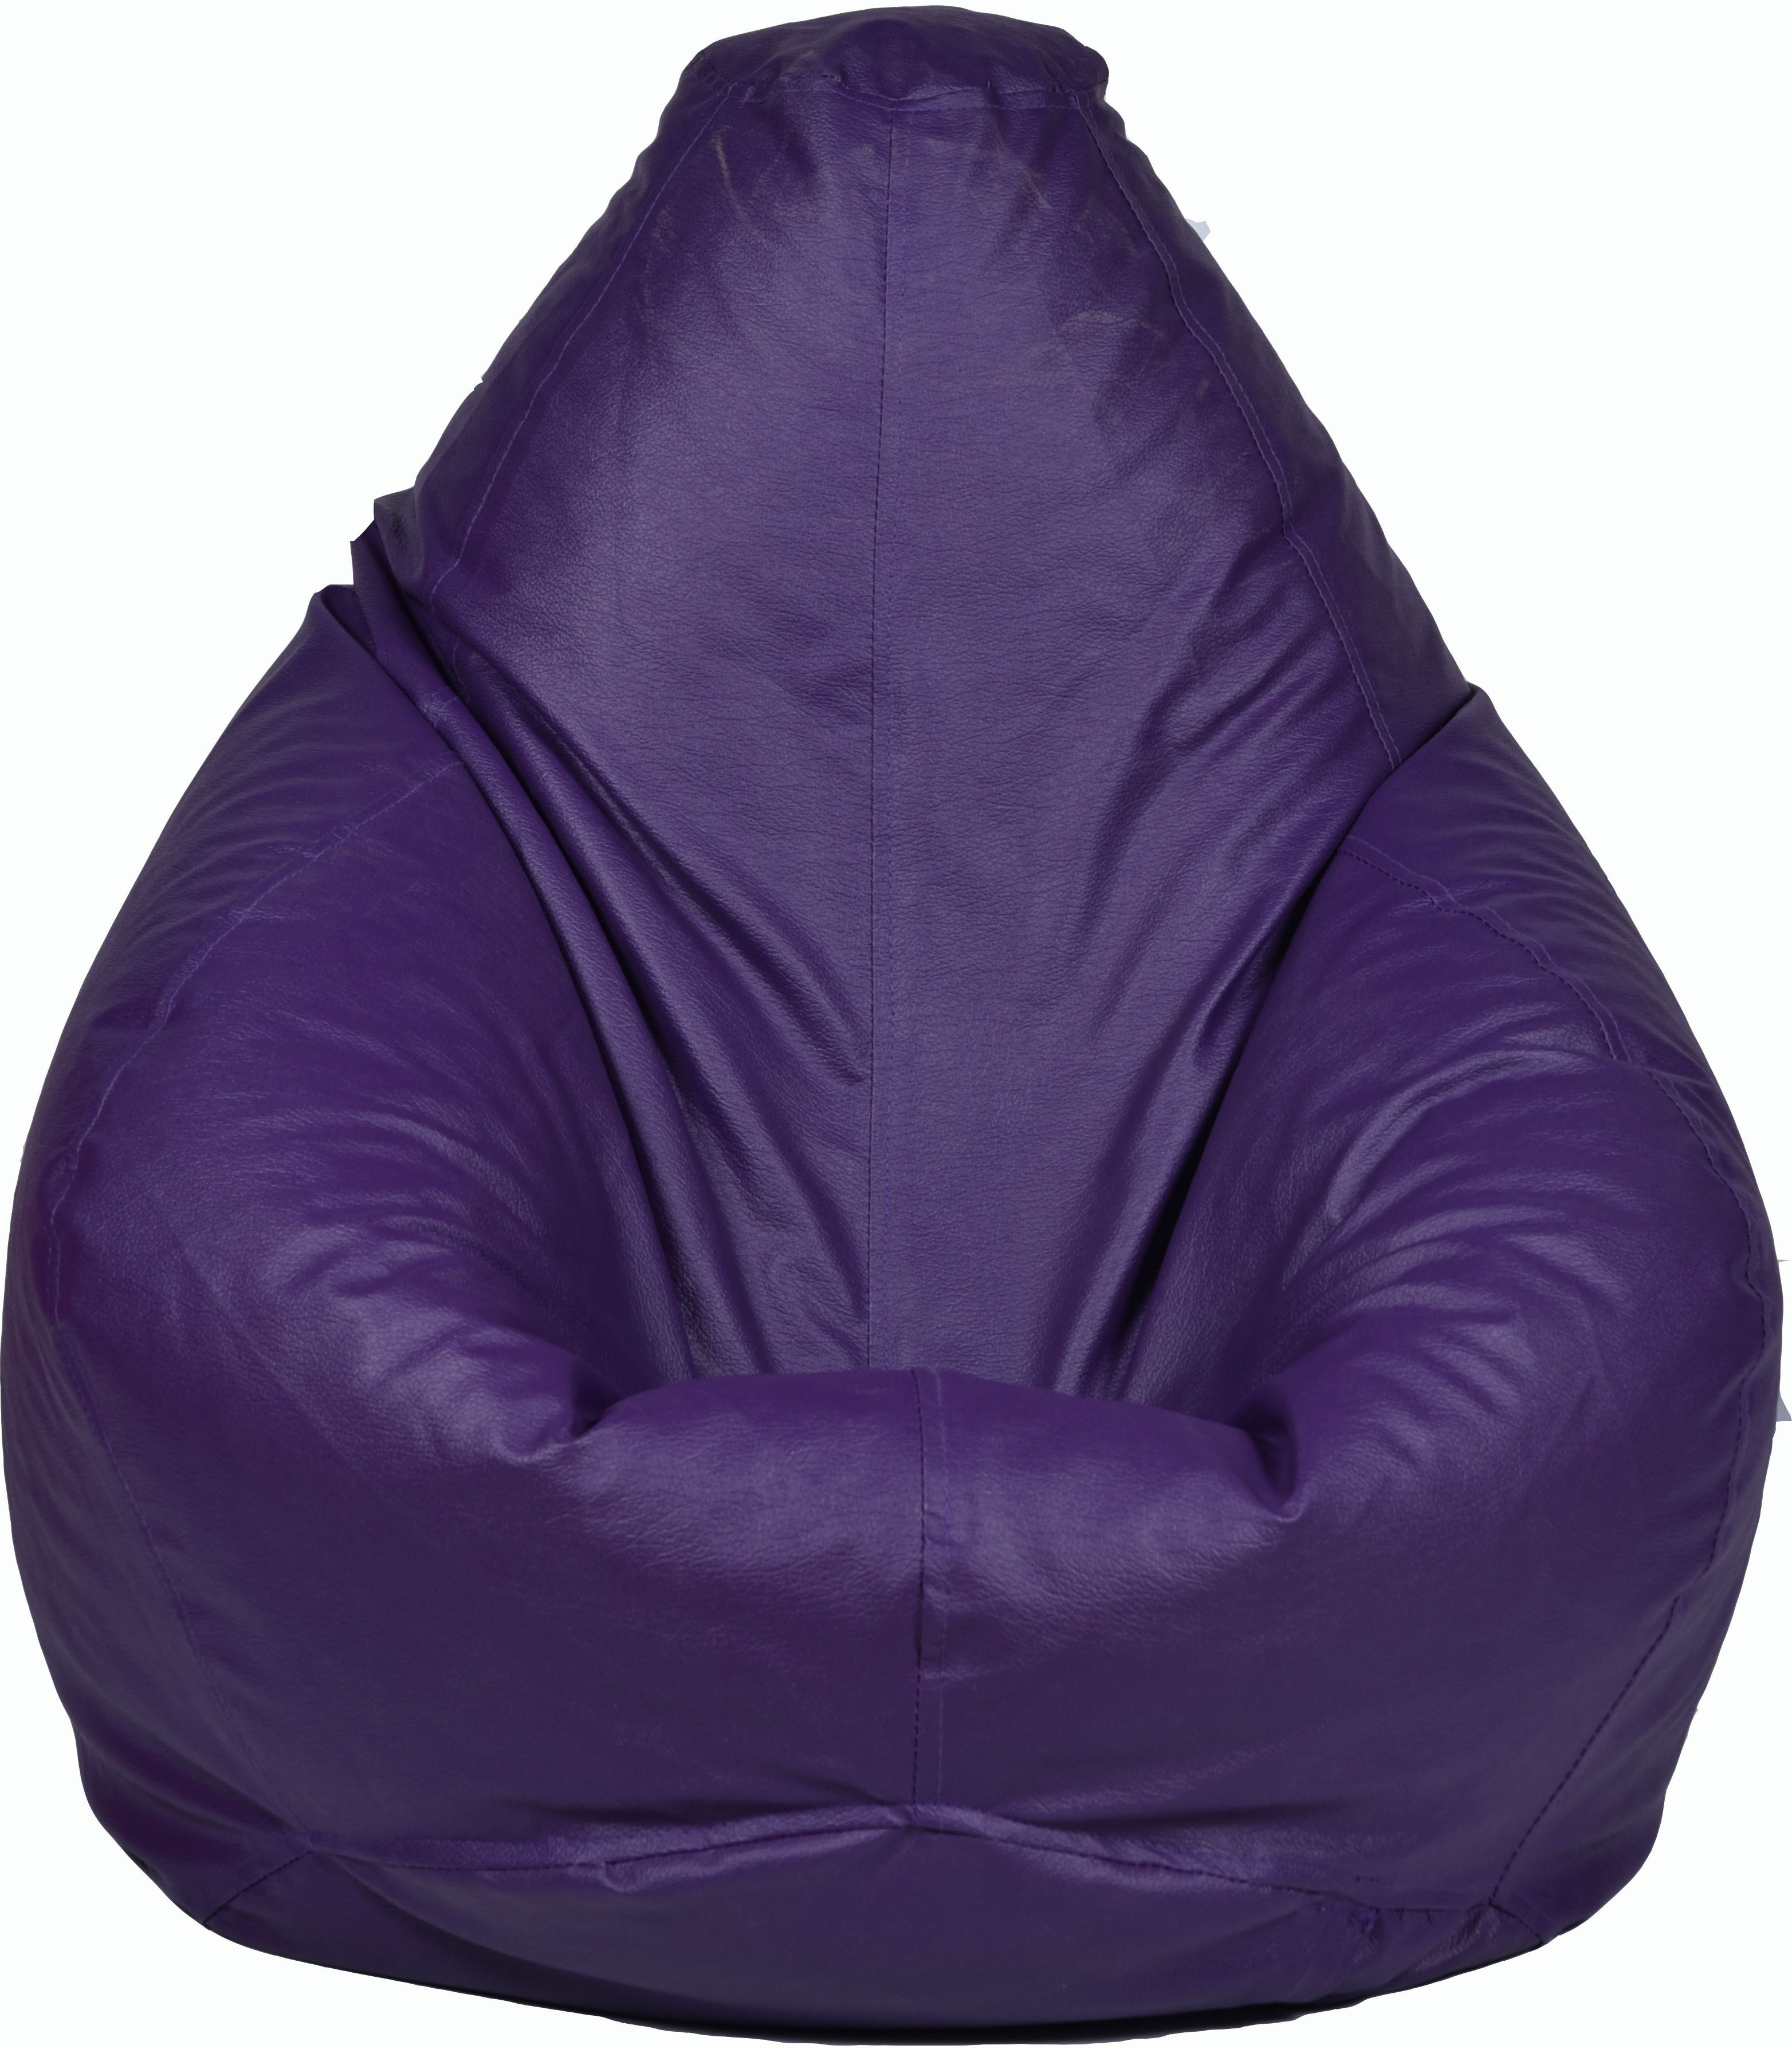 View Mobler XXL Bean Bag  With Bean Filling(Purple) Furniture (Mobler)